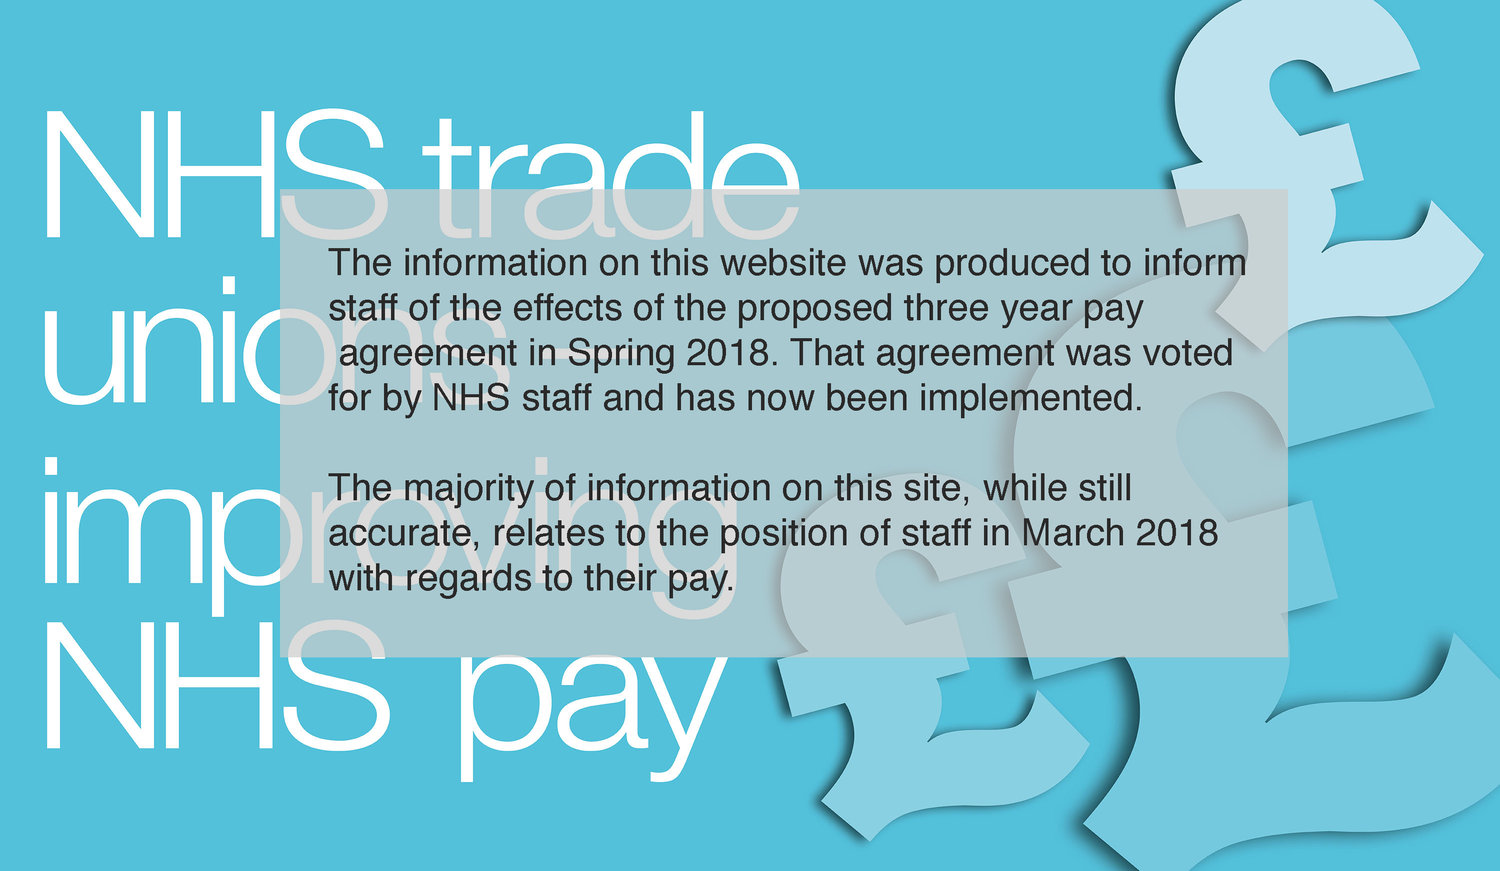 Band 7 — NHS Pay